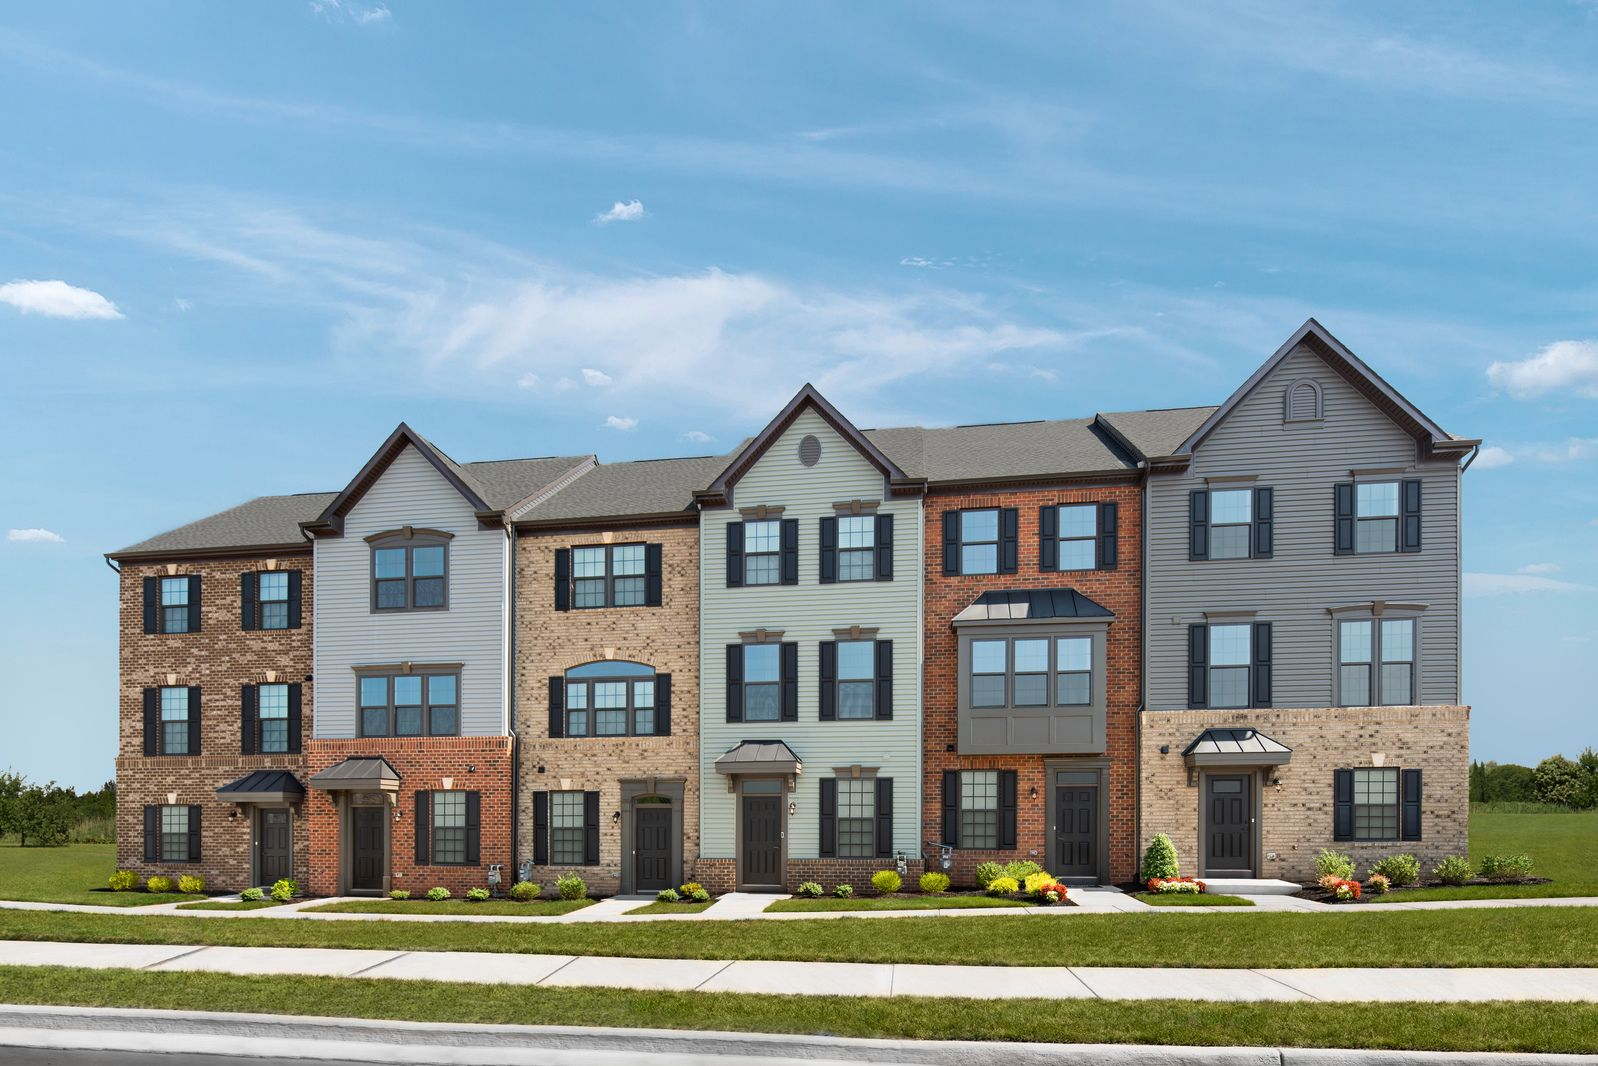 FOSTER'S GLEN - FROM THE LOW $500S:Fairfax County's lowest priced new towns & condos in a prime location off Rte. 28 near Dulles Airport, the Metro, Herndon & Reston!Schedule your visit online for an extra $500 towards closing costs!